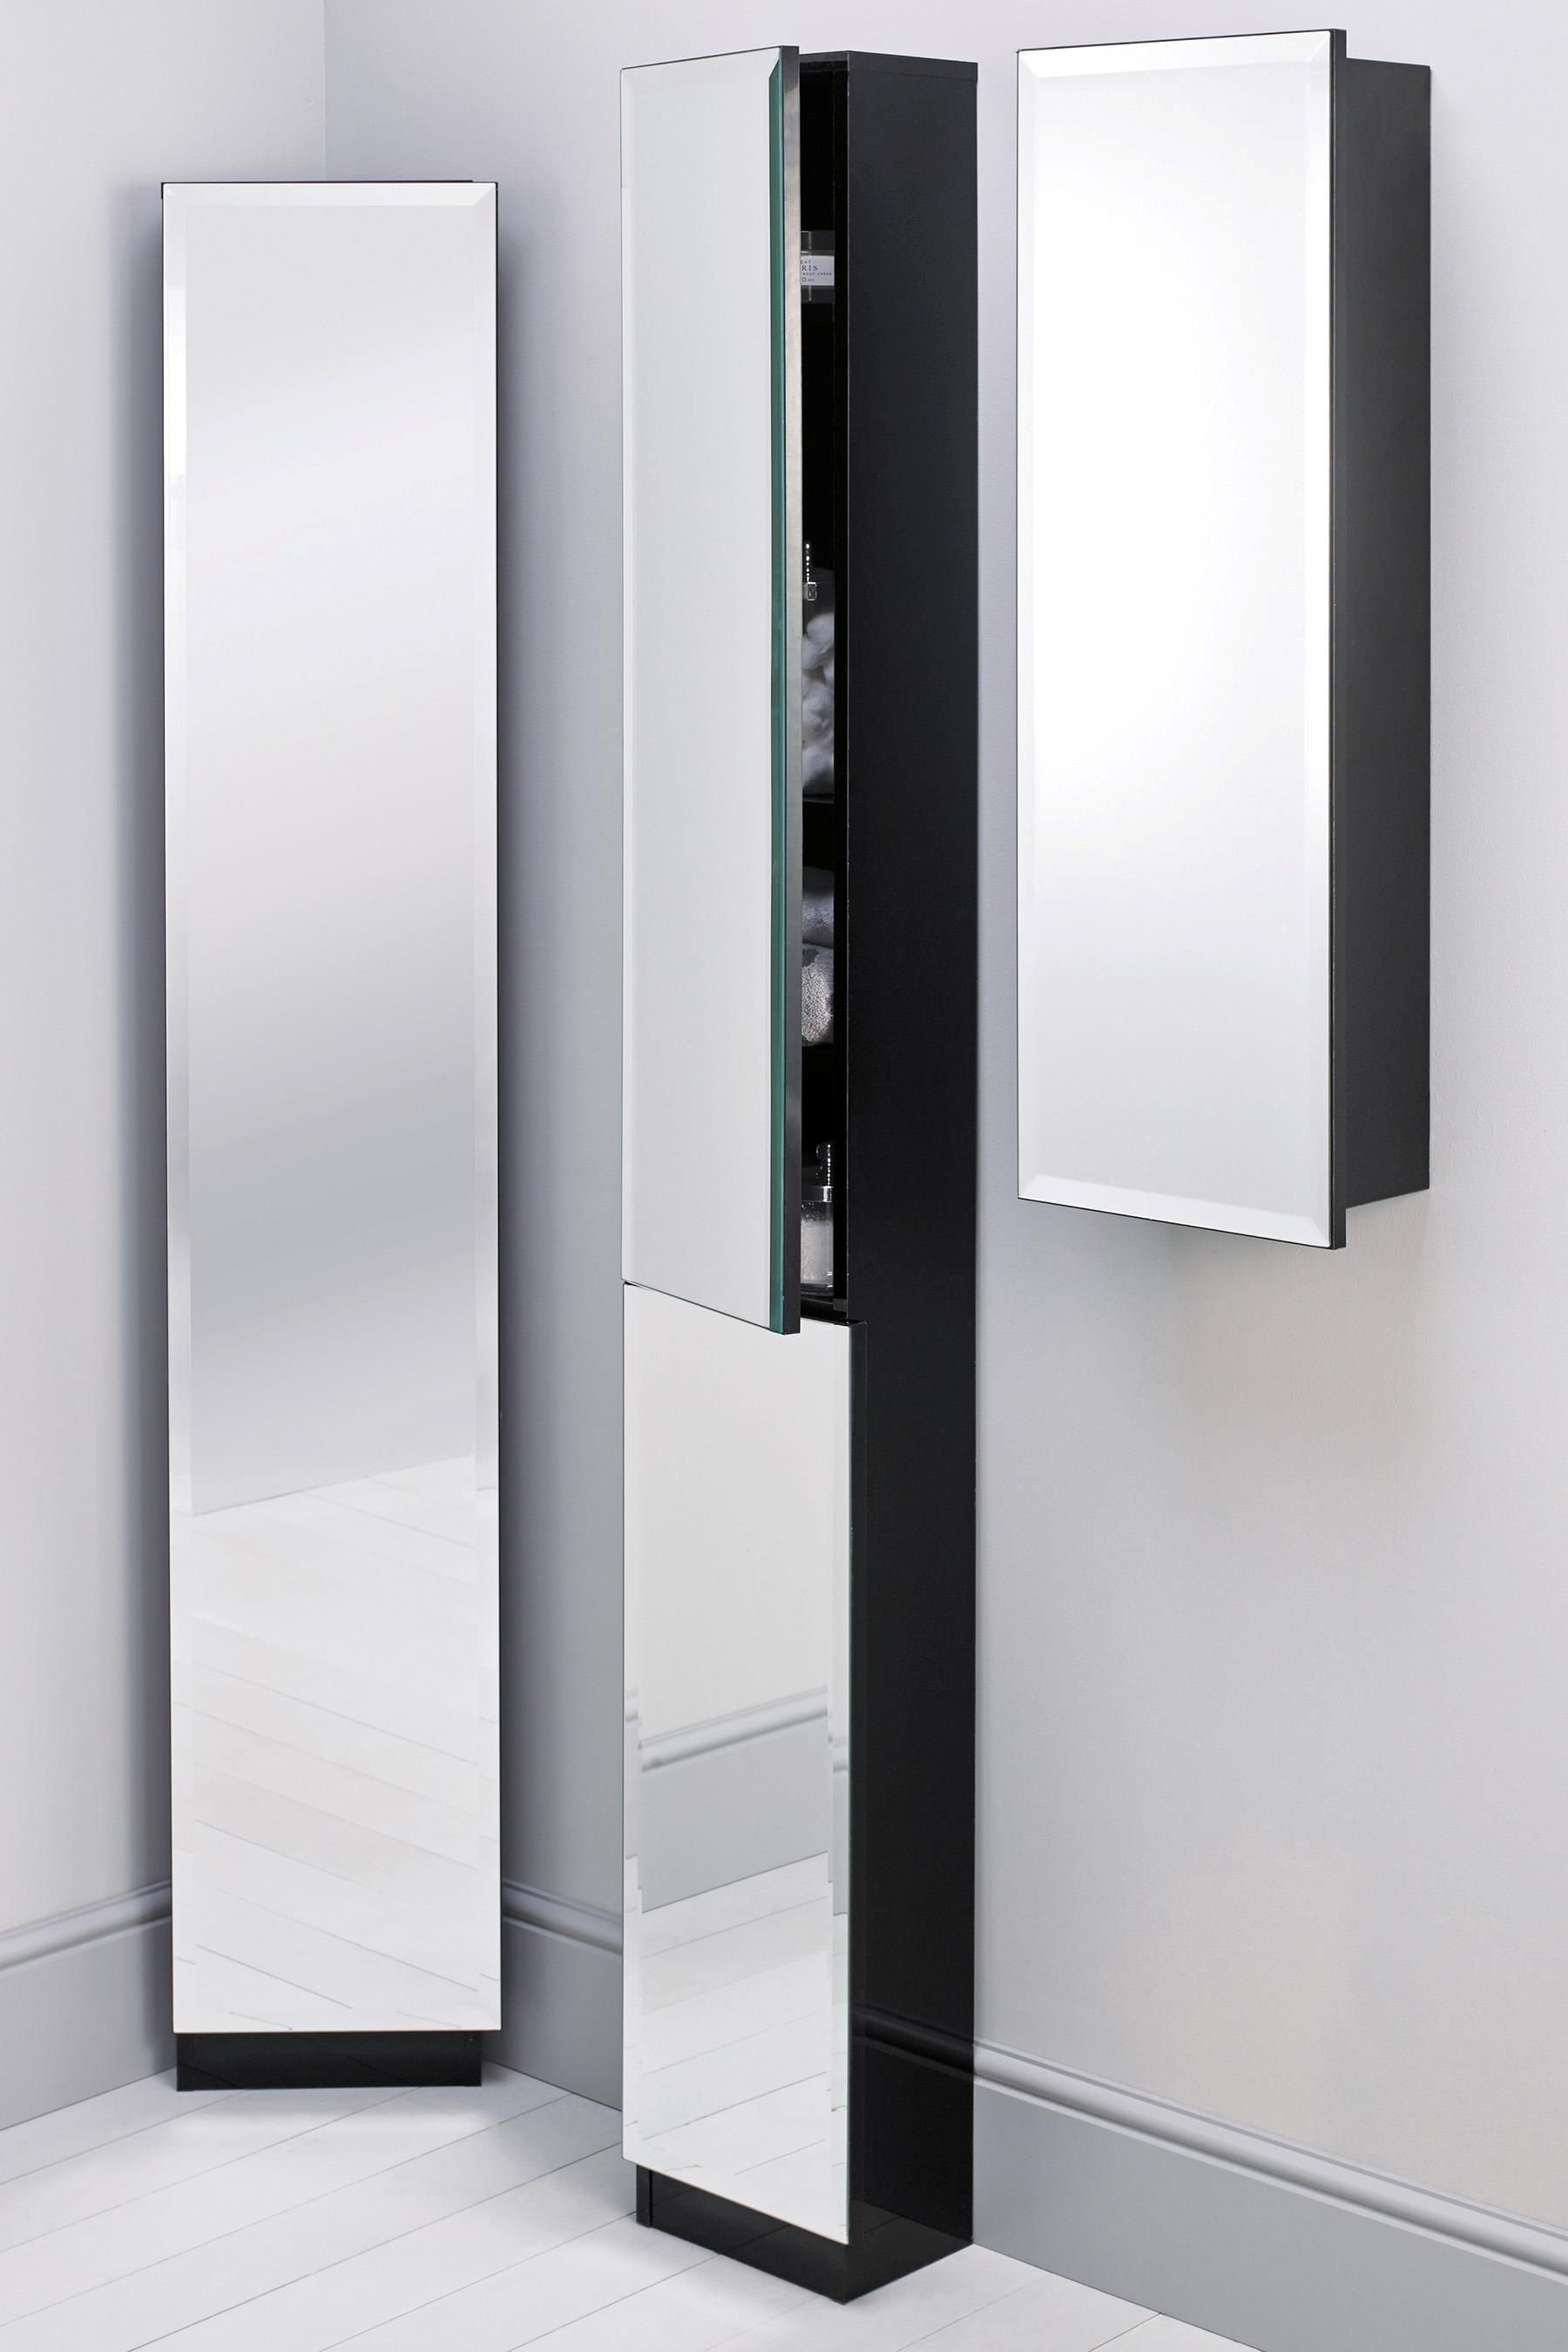 Black Wooden Cabinet With Glass On The Door Of Corner Cabinet For Your Bathroom A Beauty To Save Space